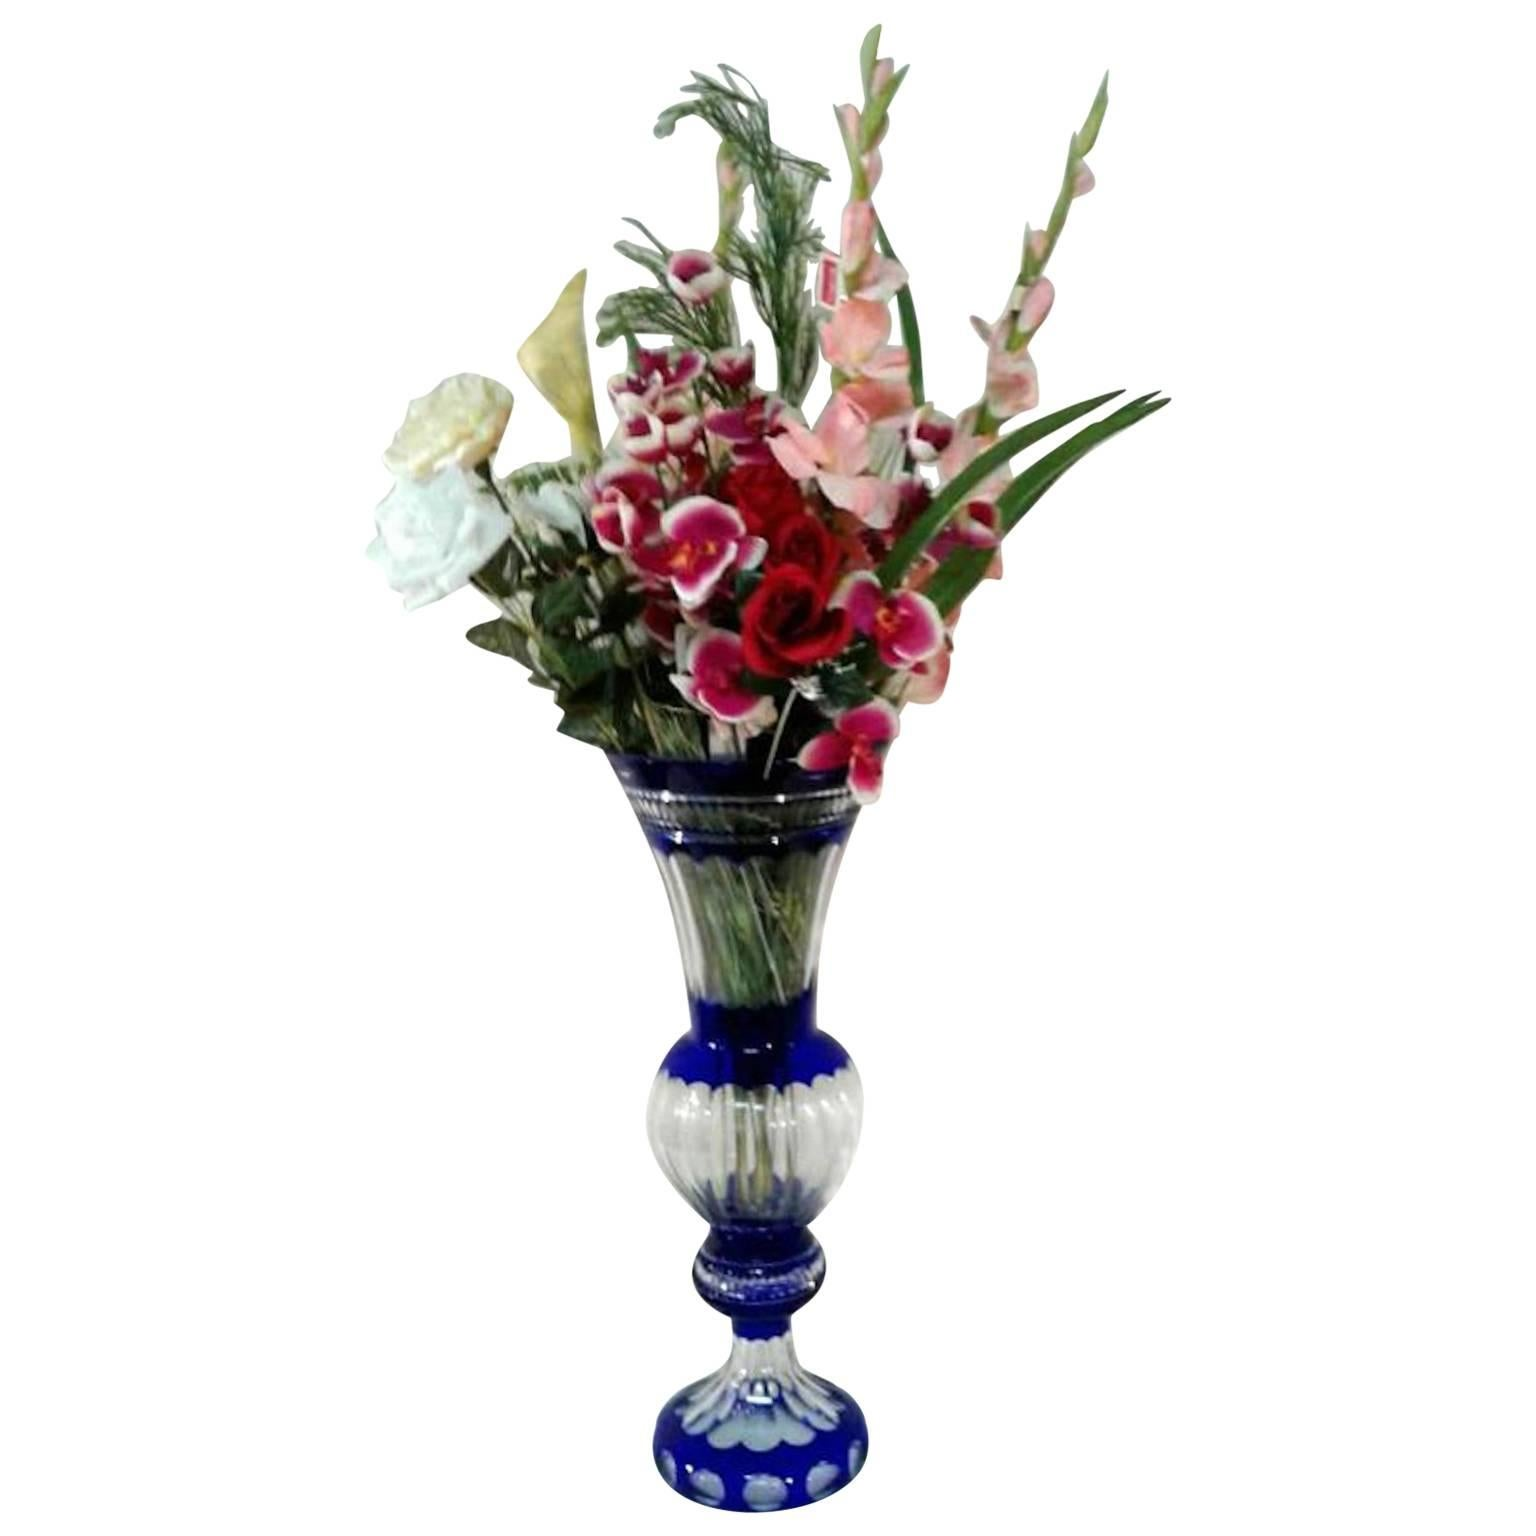 Crystal Blue Vases with Silk Flowers For Sale  sc 1 st  1stDibs & Crystal Blue Vases with Silk Flowers For Sale at 1stdibs